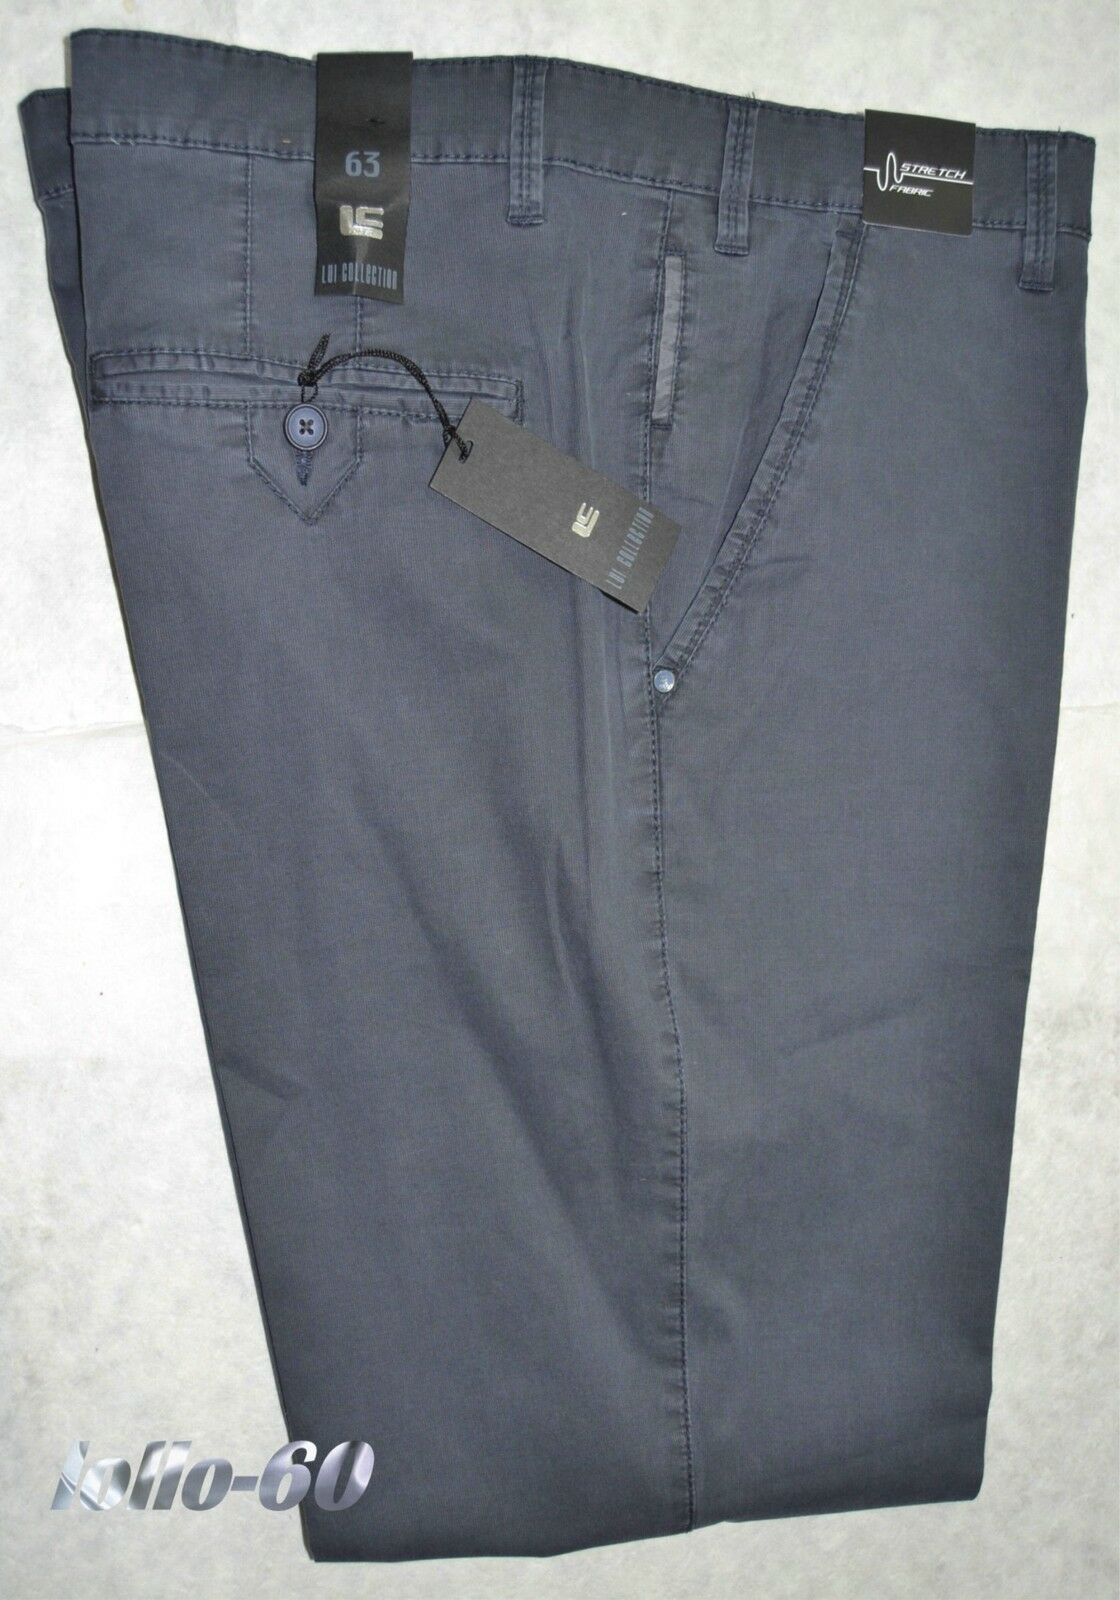 Men's trousers PLUS SIZES size 63 stretch cotton bluee washed-out OVERSIZE